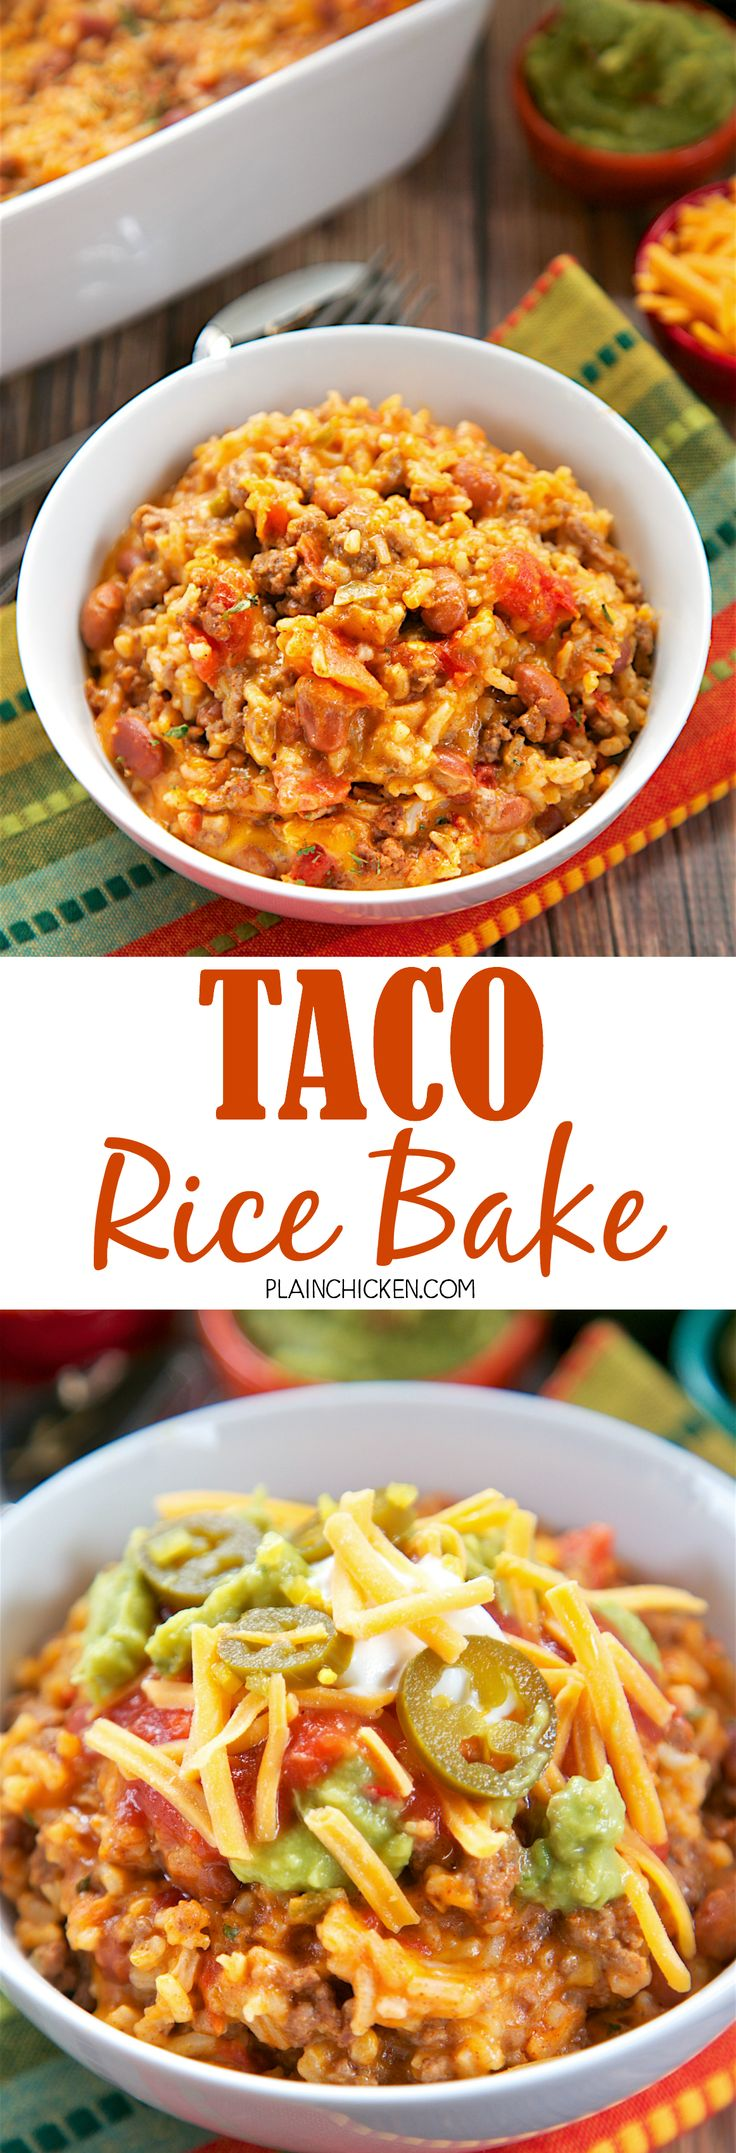 Taco Rice Bake - loaded with taco meat, beans, Rotel, cheese, and rice. It's a full meal in one dish! We like to top the casserole with our favorite taco toppings - cheese, sour cream, jalapeños and guacamole! This a great change to our usual taco night!! (Ranch Chicken Marinade)